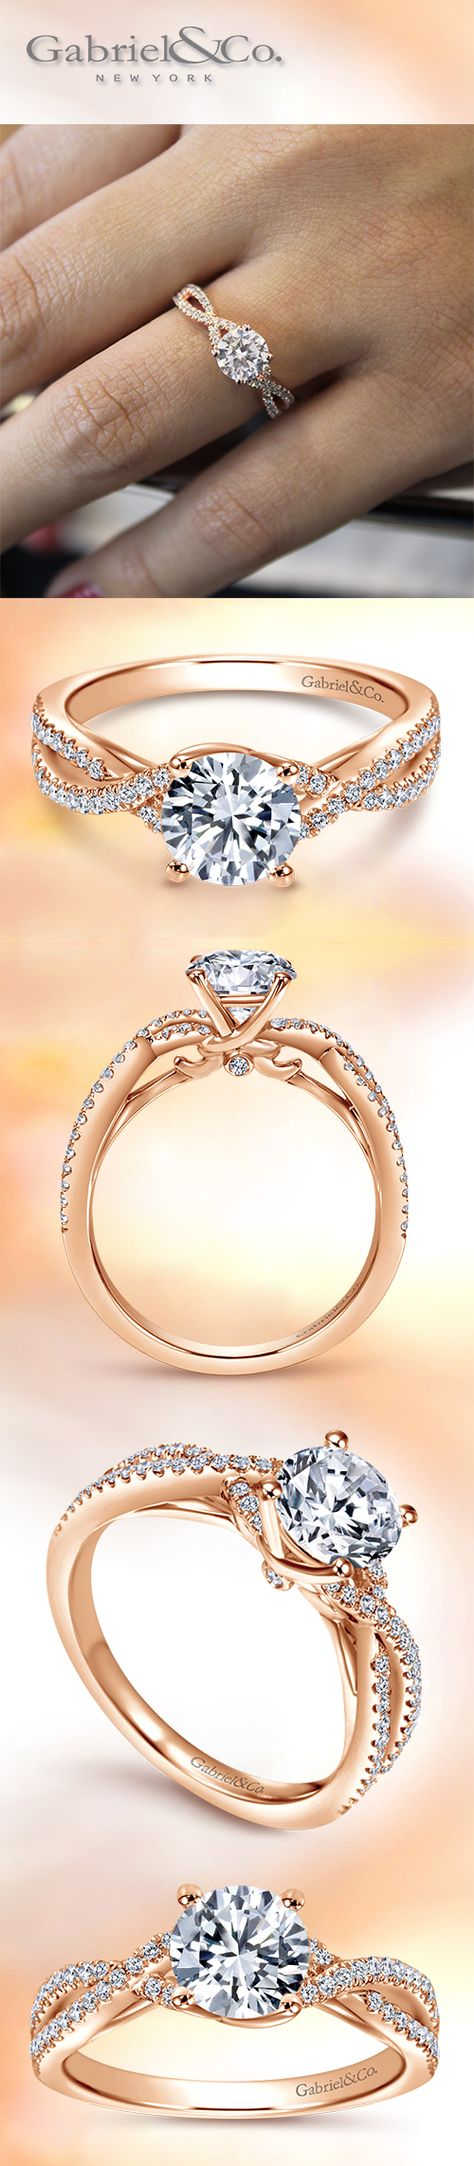 Gabriel & Co. - A contemporary 14k Pink Gold Round-Cut Diamond Engagement Ring encrusted with pavé diamonds on its twisted design.